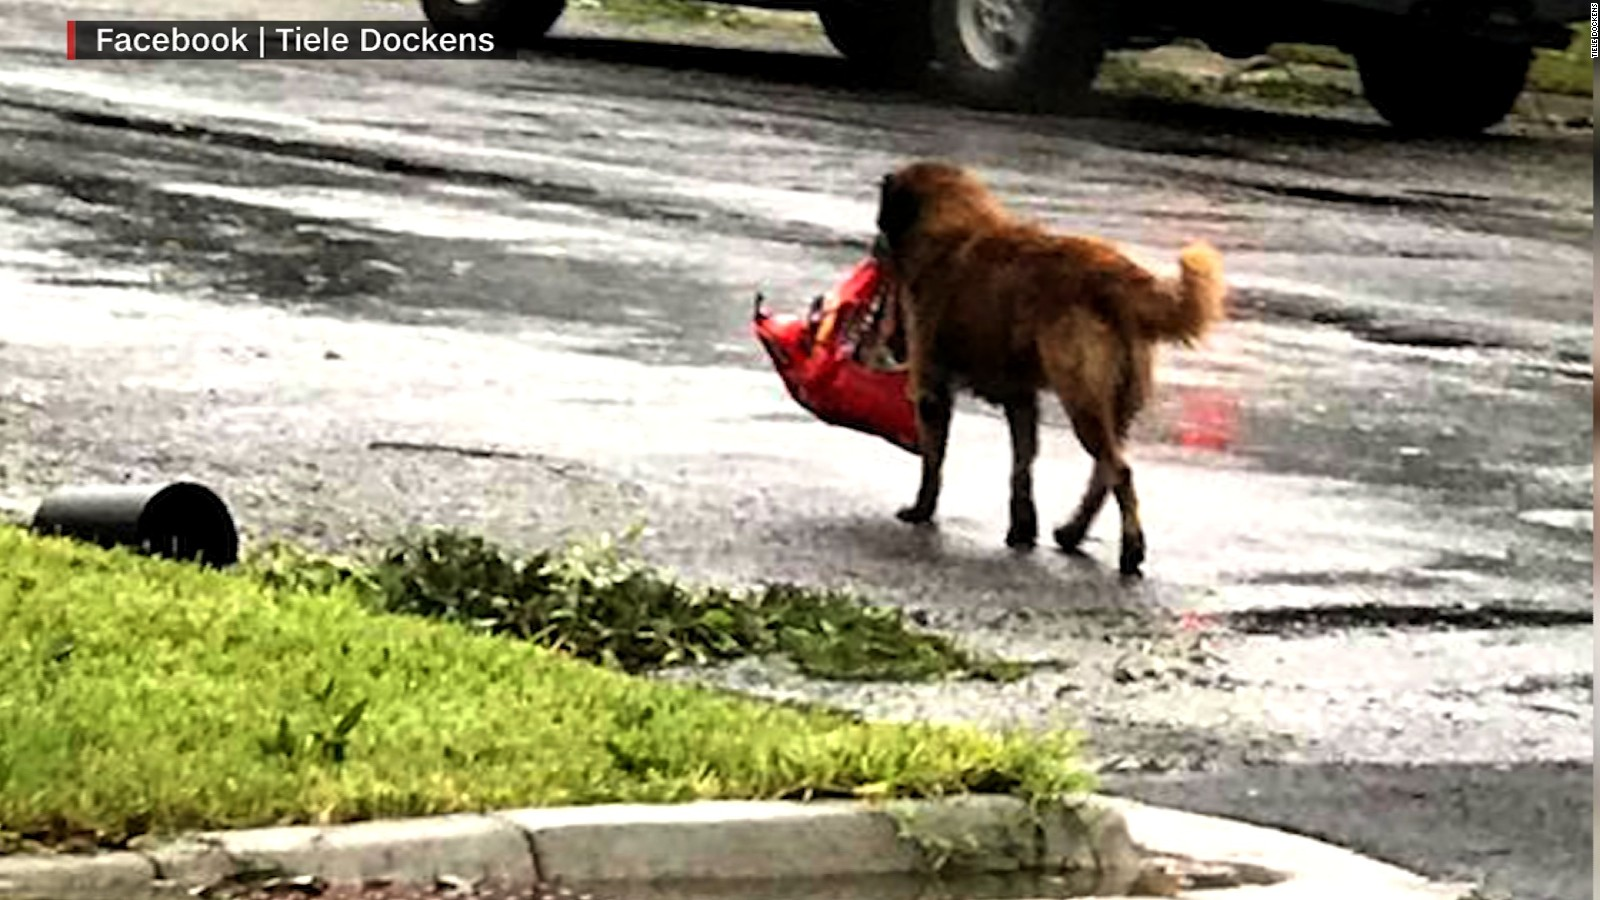 https://i0.wp.com/cdn.cnn.com/cnnnext/dam/assets/170828202247-otis-dog-hurricane-harvey-viral-picture-ebof-00004503-full-169.jpg